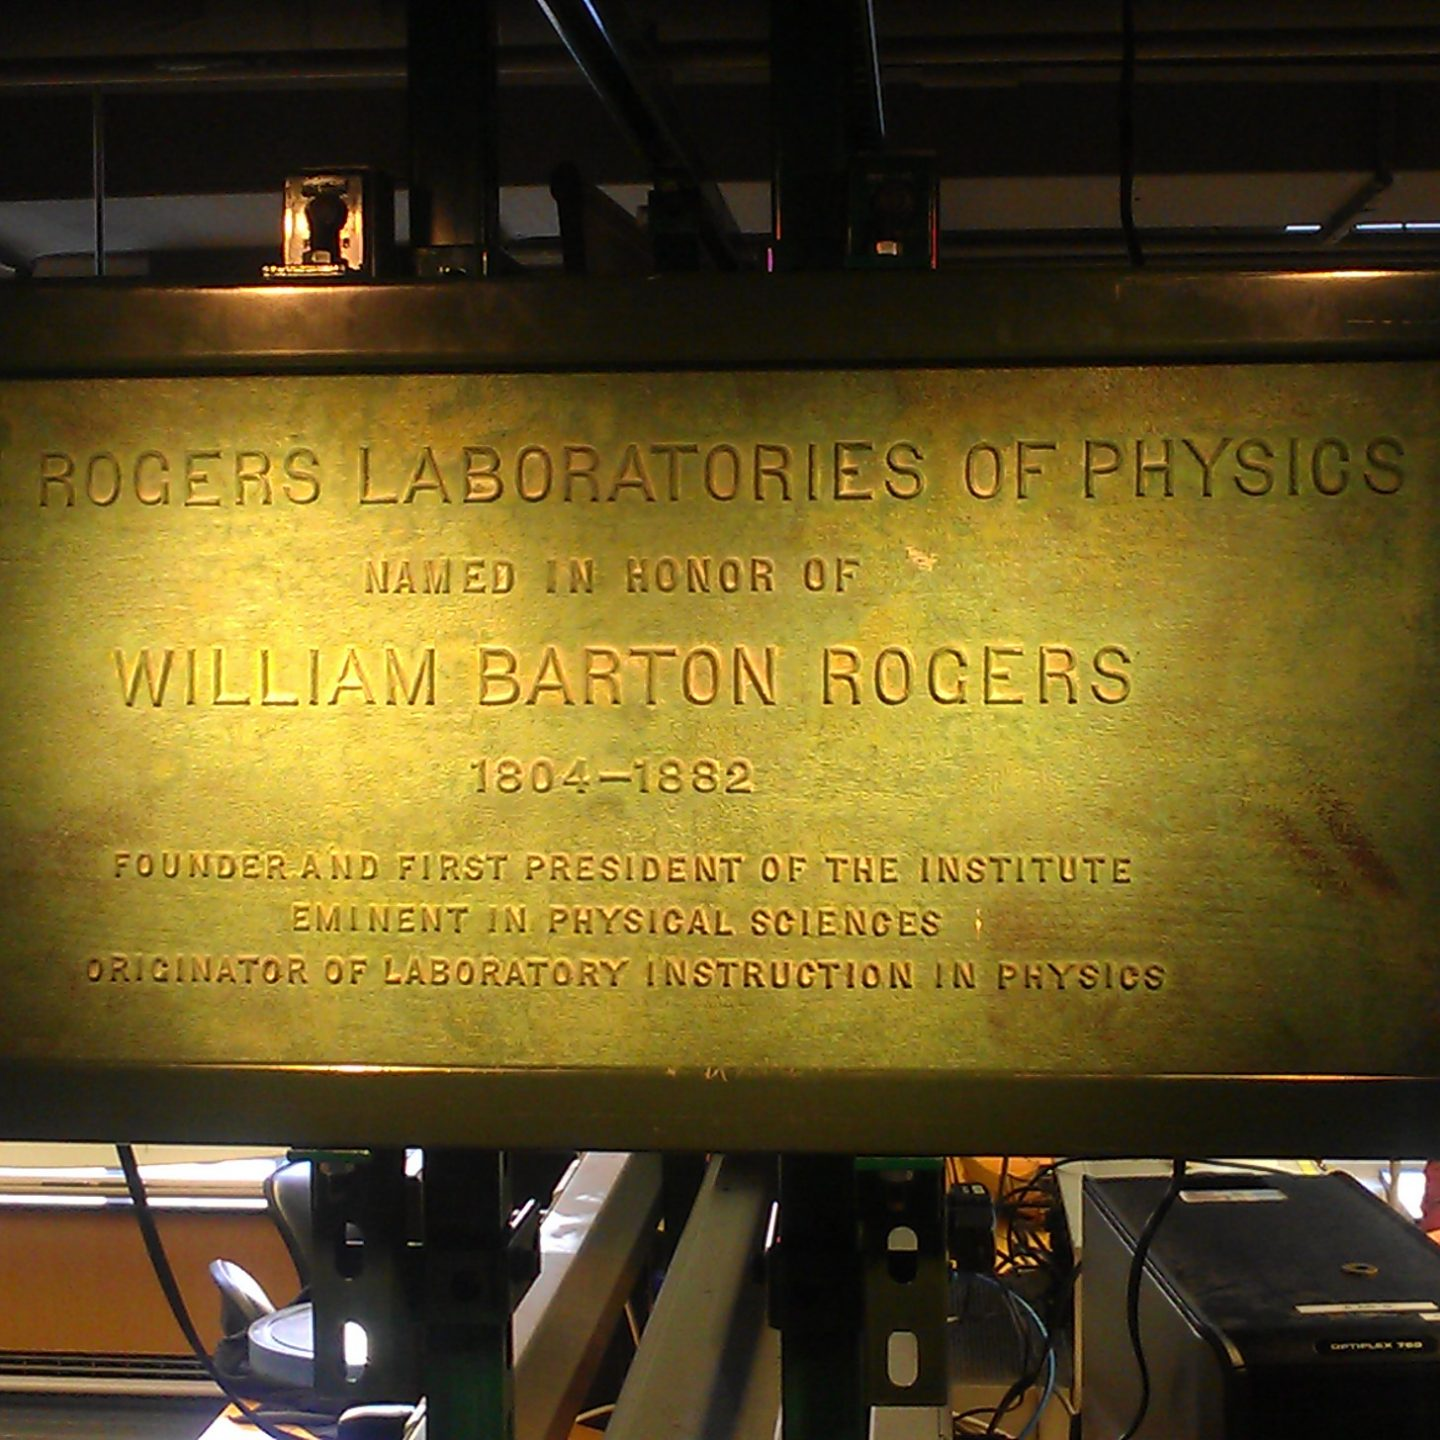 [11/2012] Junior Lab Sign Mounting: The Rogers Laboratories of Physics Brass Sign